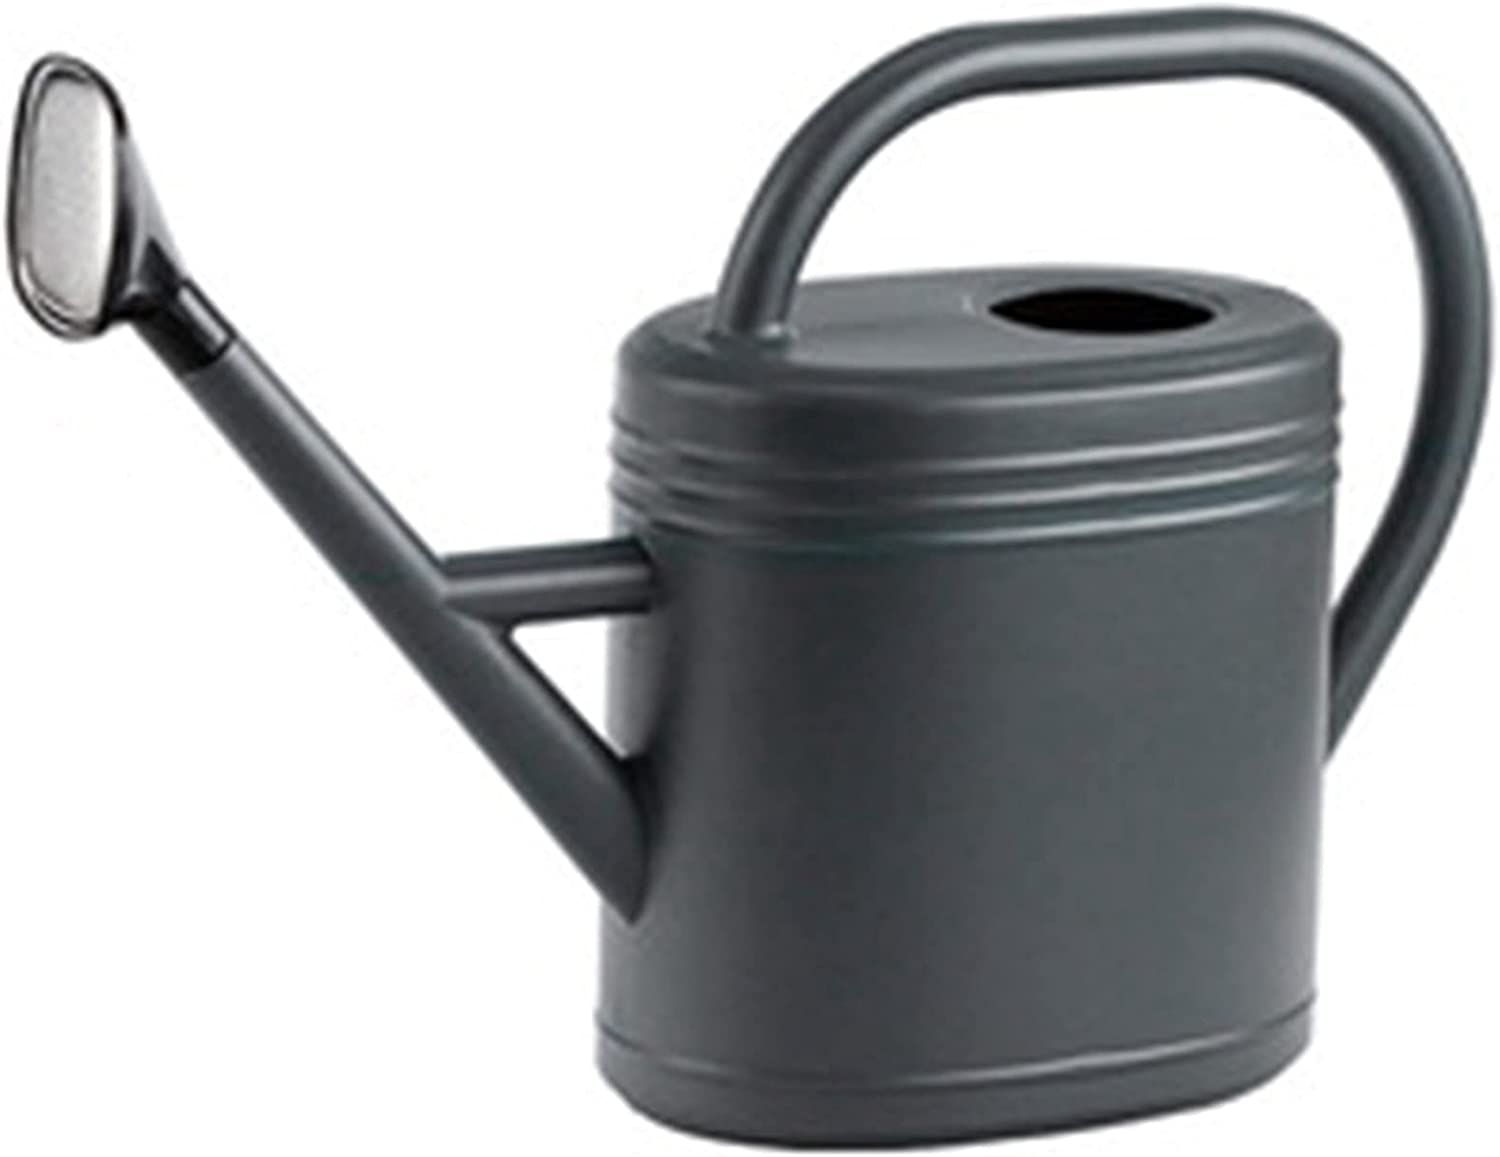 WYDMBH Watering Don't miss the campaign can Kettle Max 46% OFF Sh Plant Can Bonsai